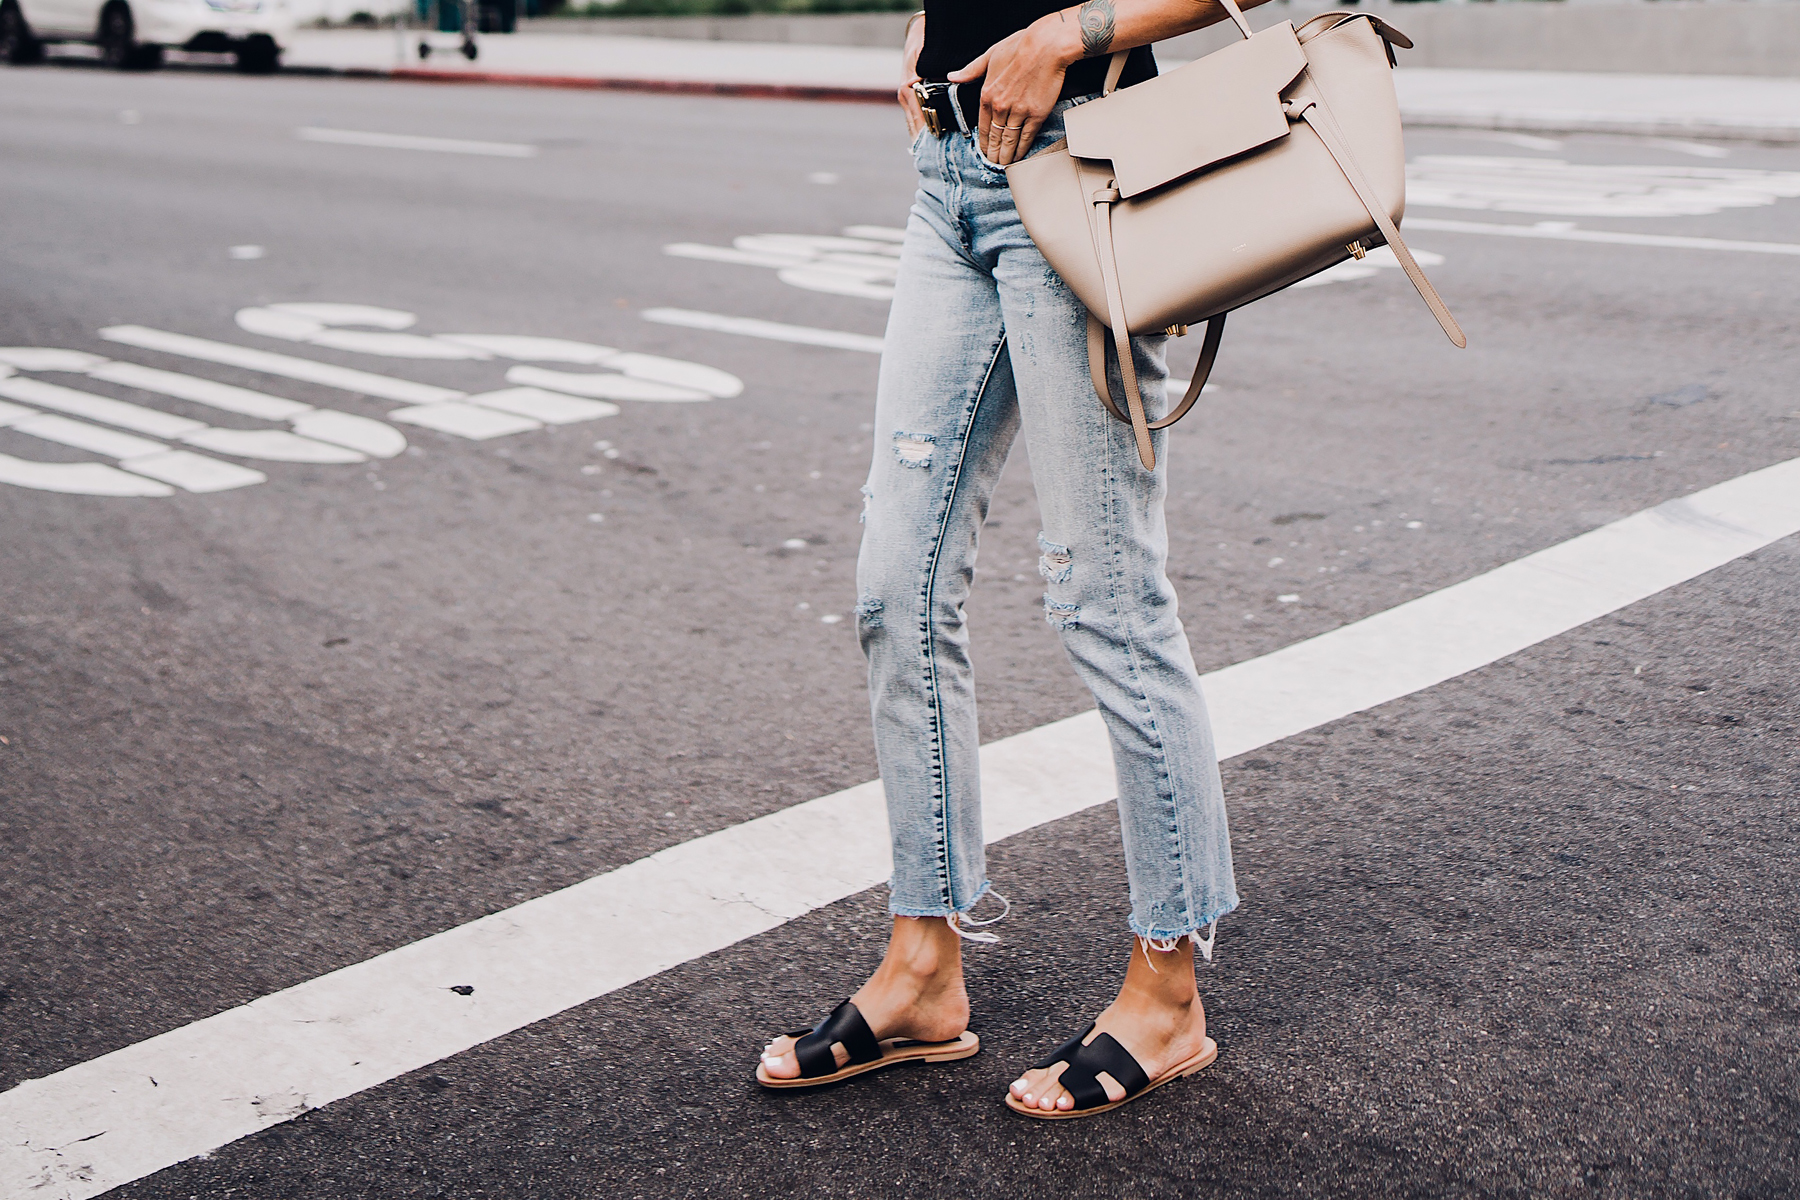 Woman Wearing Blanknyc Ripped Jeans Steven Black Greece Sandals Celine Mini Belt Bag Fashion Jackson San Diego Fashion Blogger Street Style